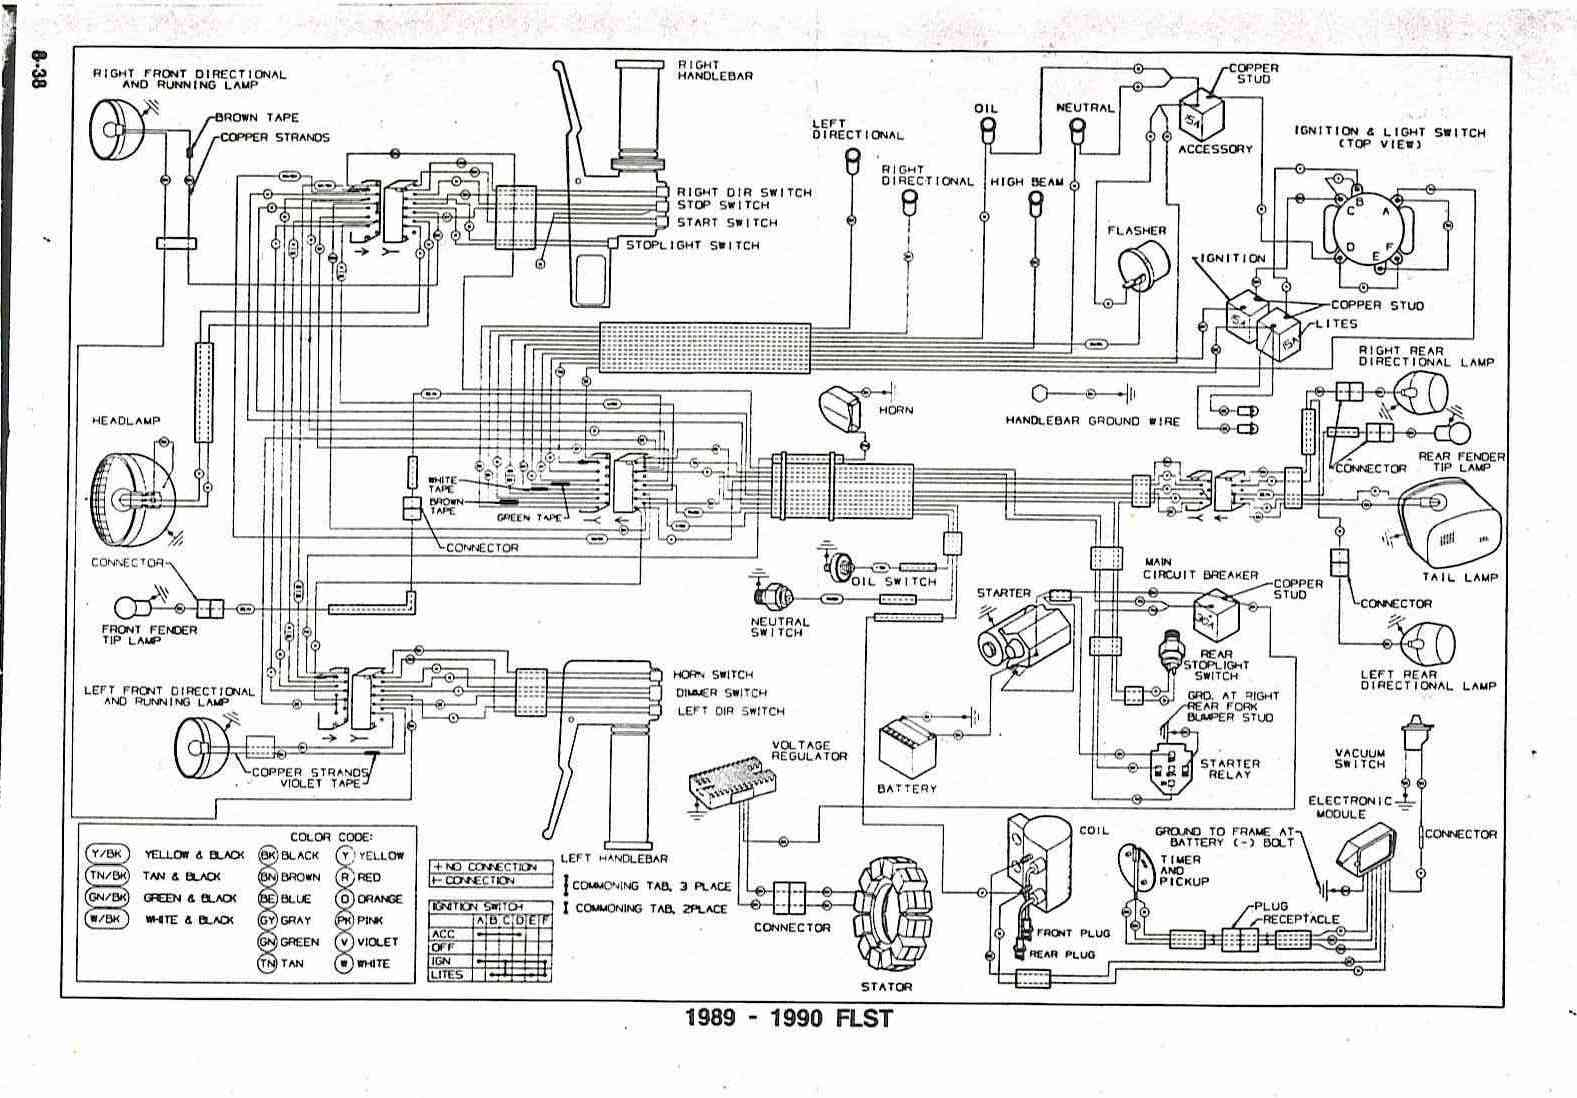 951HD_wireing_schematic2 harley wiring diagrams harley davidson golf cart schematics  at bakdesigns.co